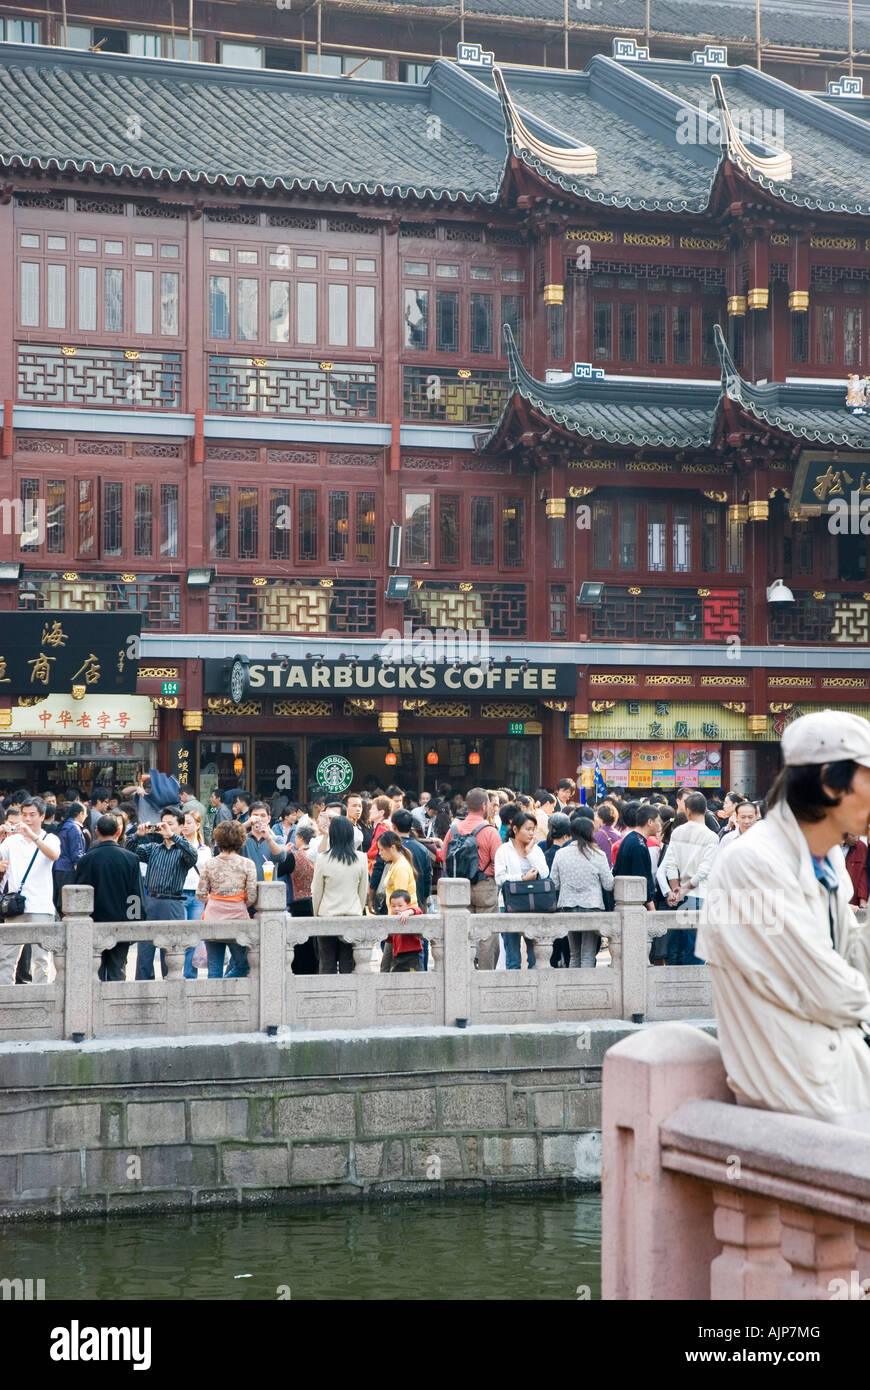 Starbucks Yu Garden Shanghai Stock Photo 14785695 Alamy